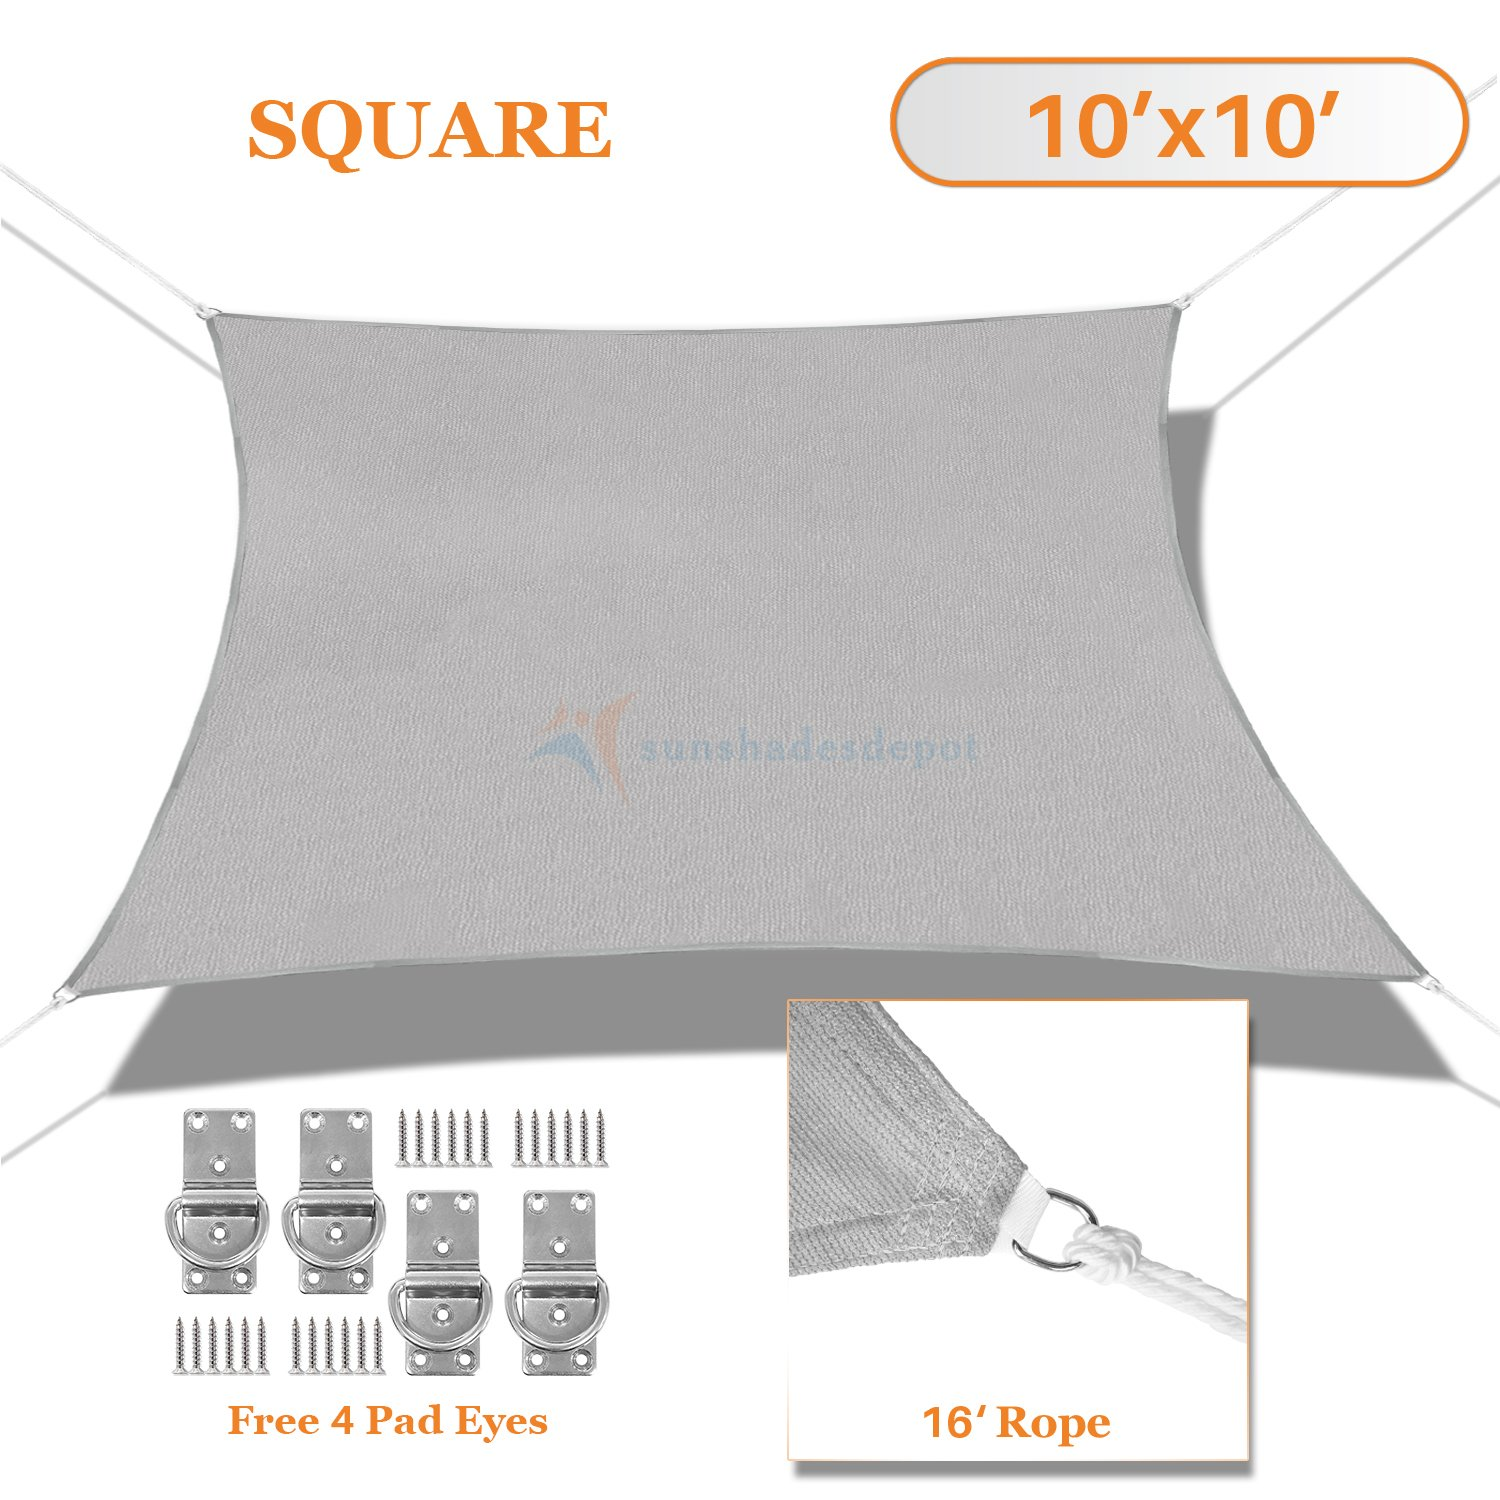 Sunshades Depot 10' x 10' Solid Light Grey Sun Shade Sail Square Permeable Canopy Tan Beige CustomSize Available Commercial Standard